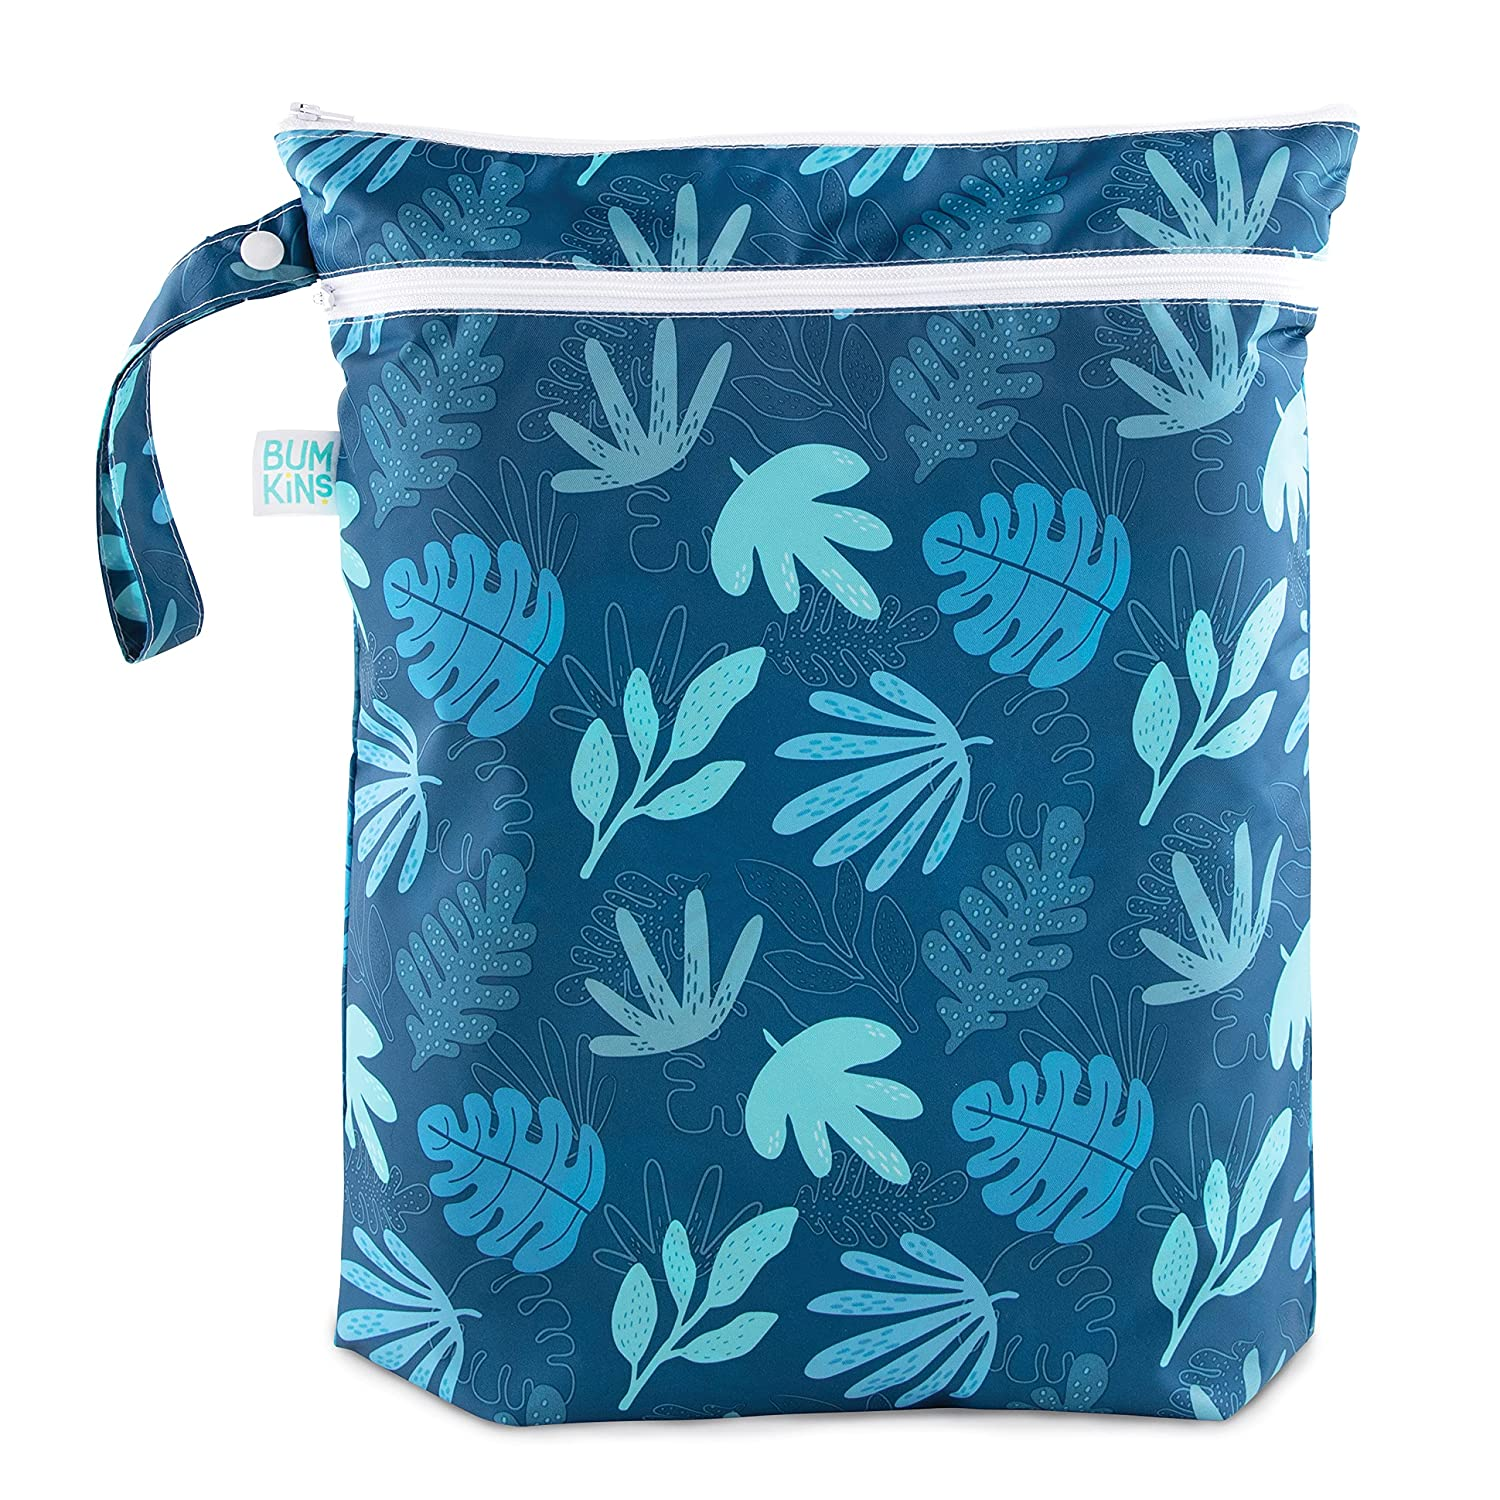 Bumkins Waterproof Wet Bag/Dry Bag, Washable, Reusable for Travel, Beach, Pool, Stroller, Diapers, Dirty Gym Clothes, Wet Swimsuits, Toiletries, 12.5 x 14 – Blue Tropic